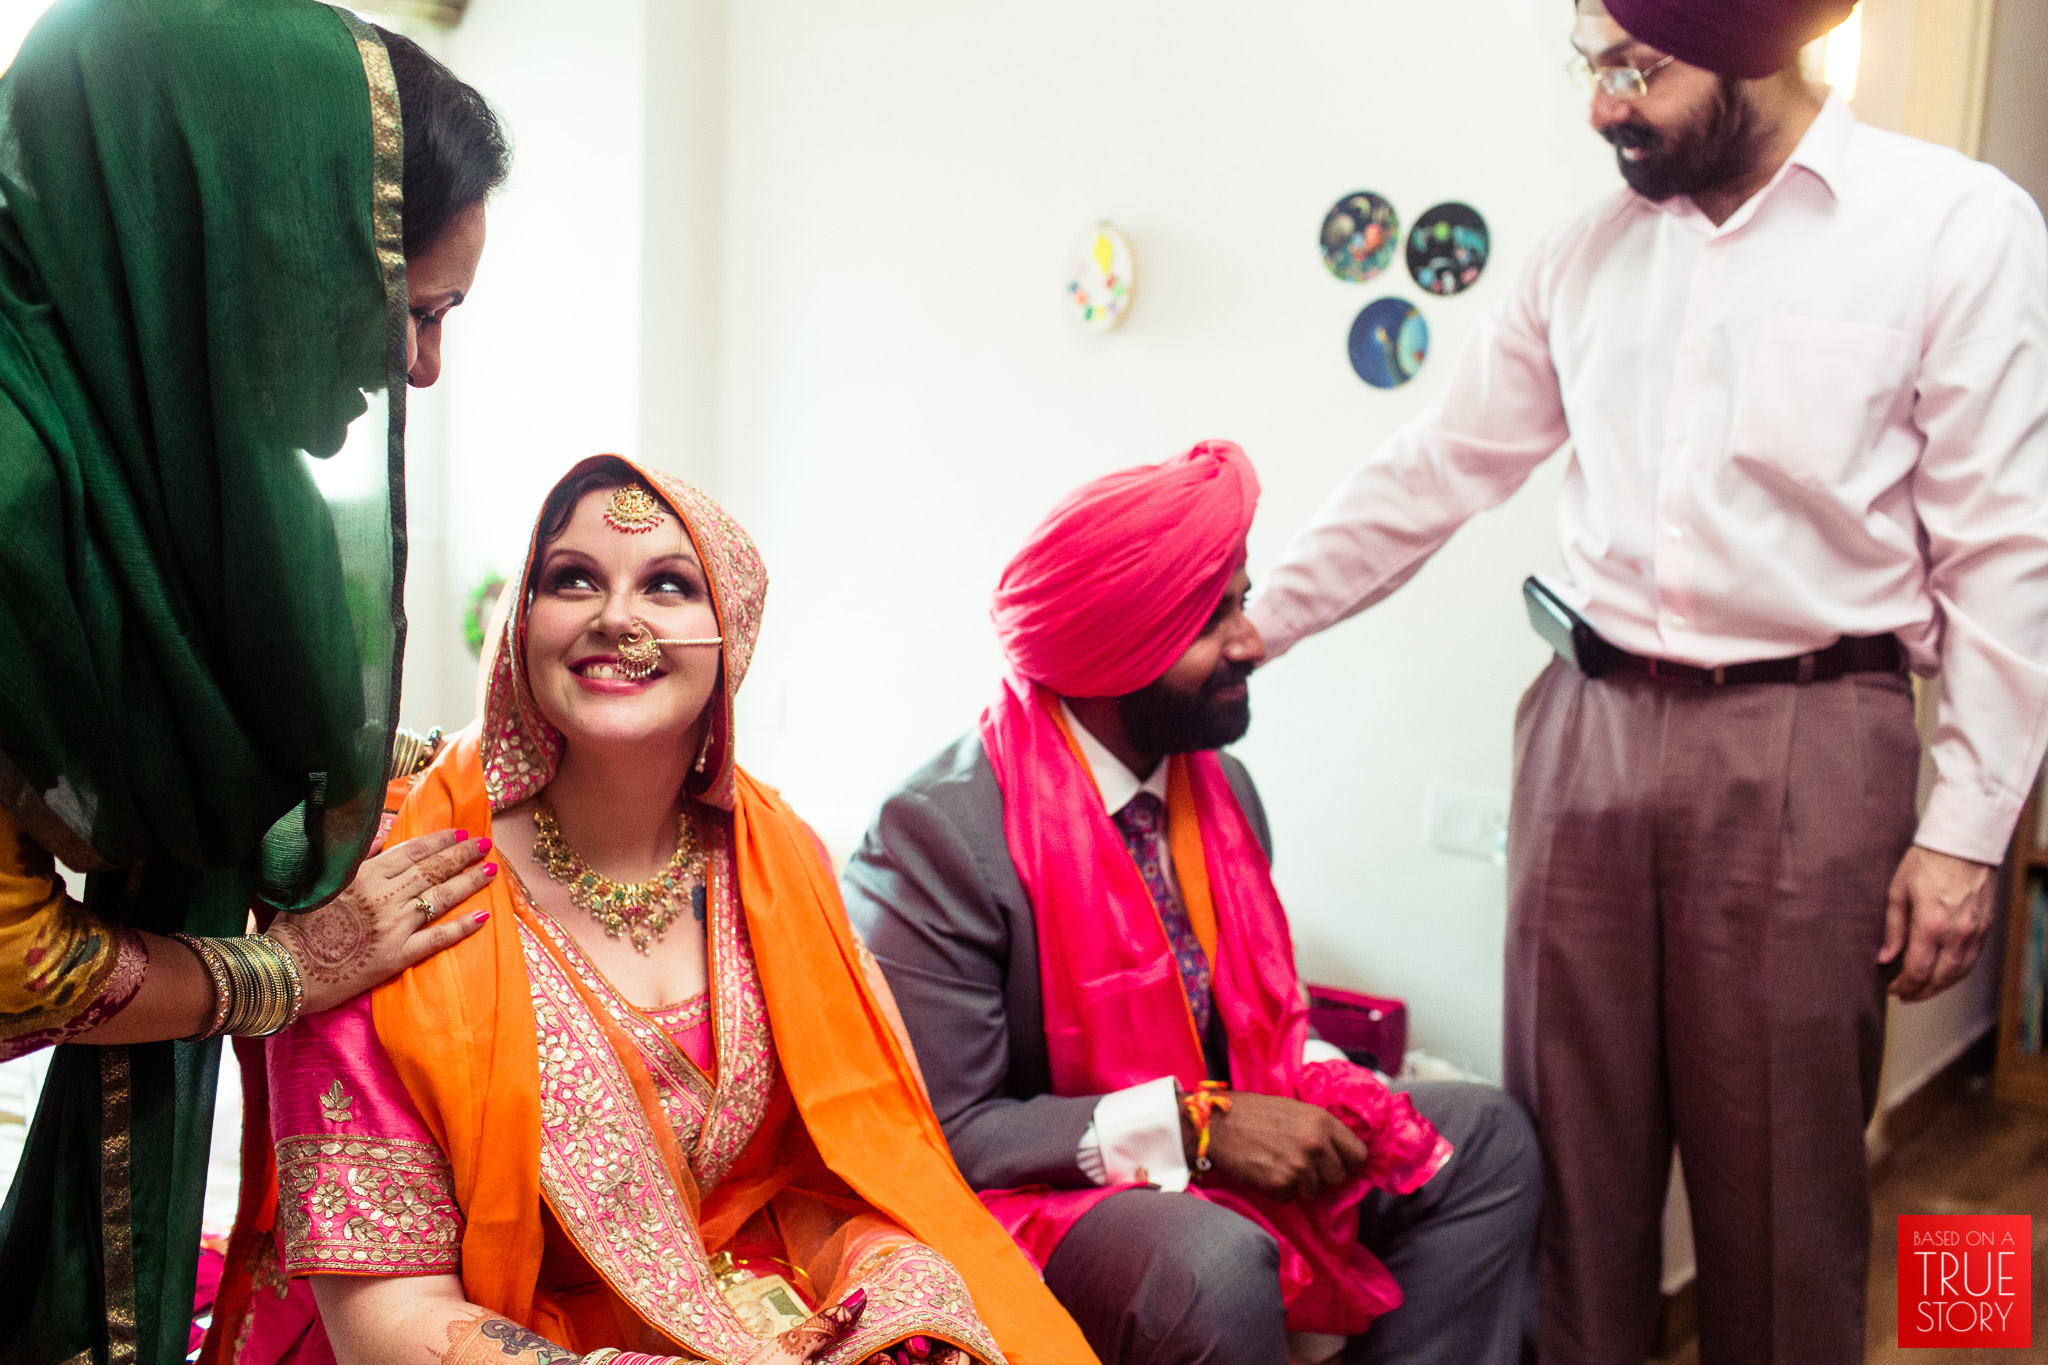 candid-photography-sikh-wedding-bangalore-0032.jpg